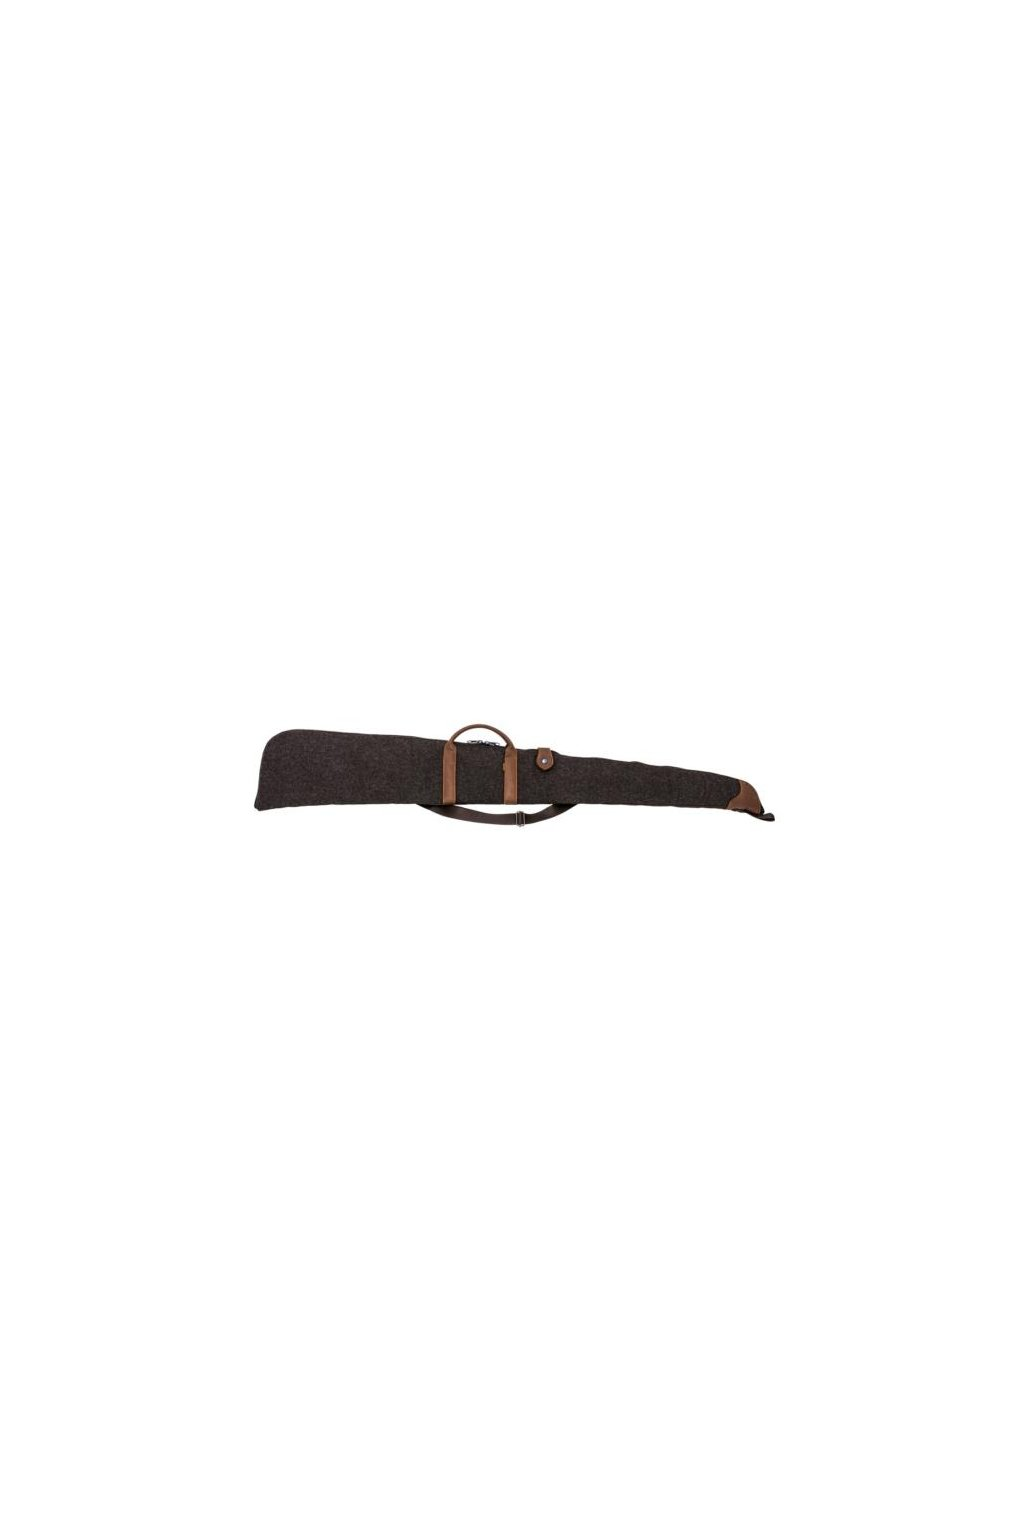 akah shotgun cover loden moose leather